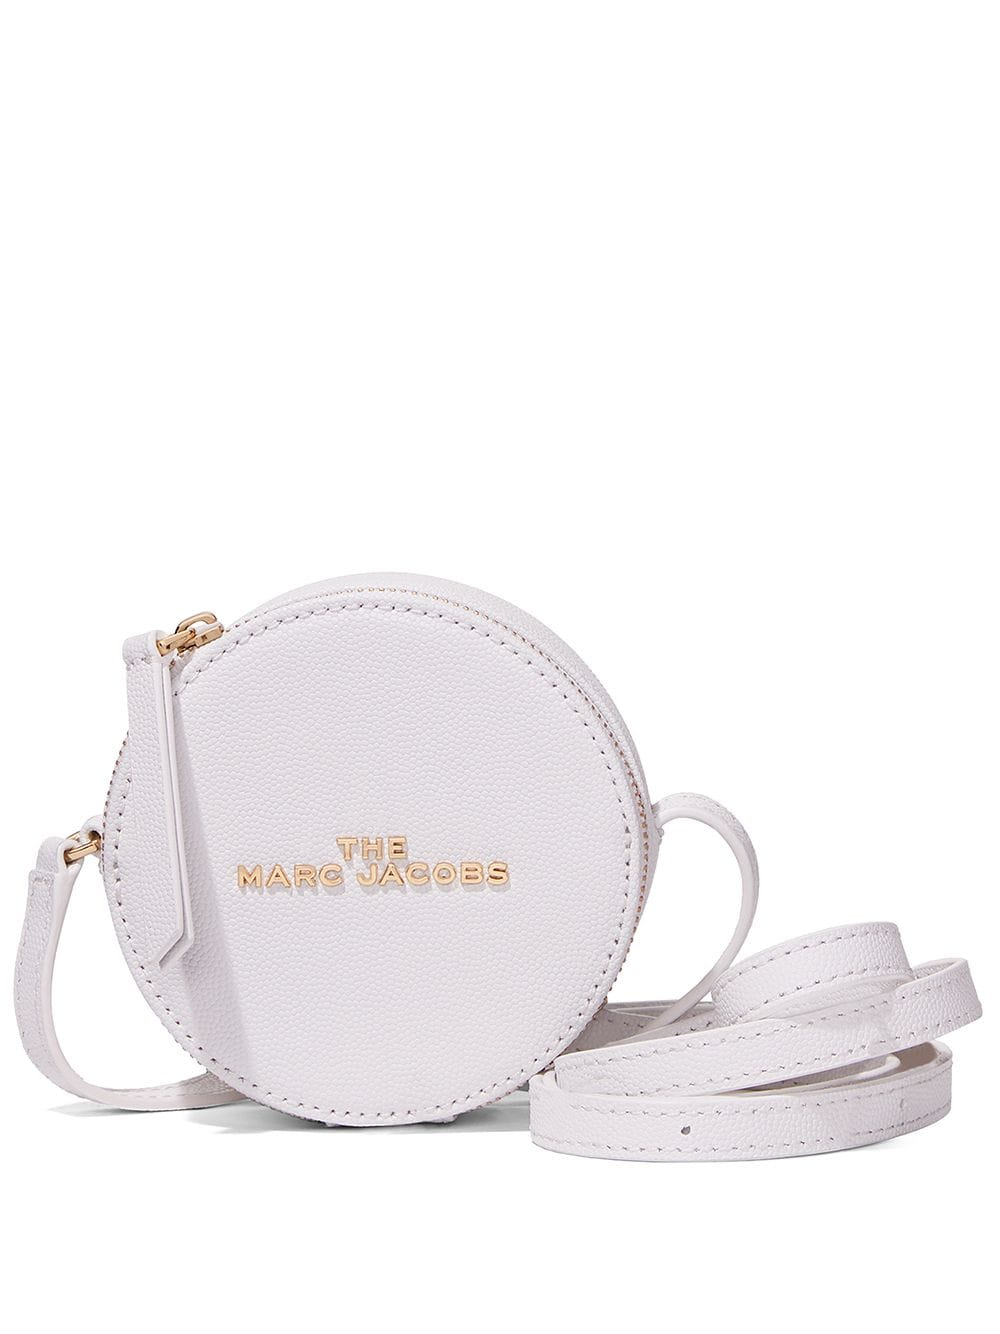 White leather medium The Hot Spot wallet from Marc Jacobs featuring gold-tone logo lettering, pebble